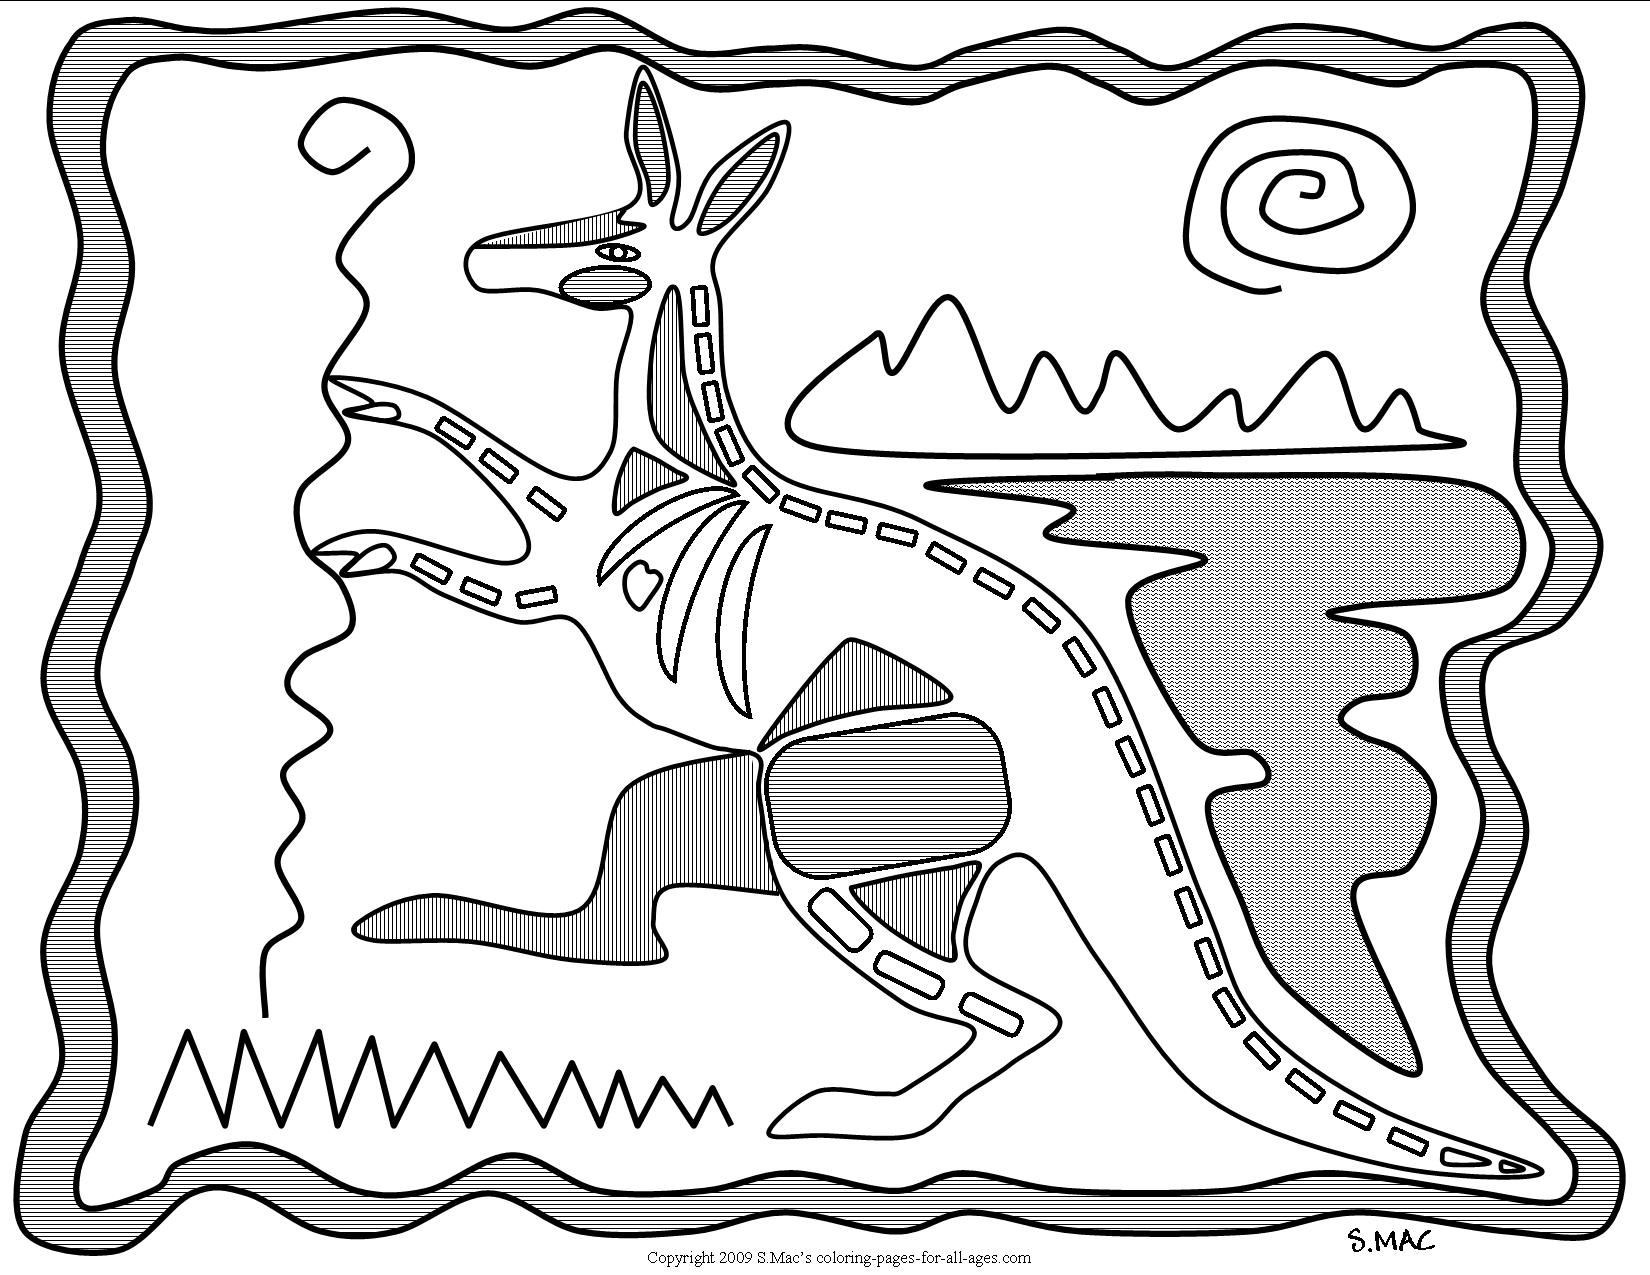 Free coloring pages kangaroo - S Mac S X Ray Art Kangaroo Coloring Page Paper Art Pinterest